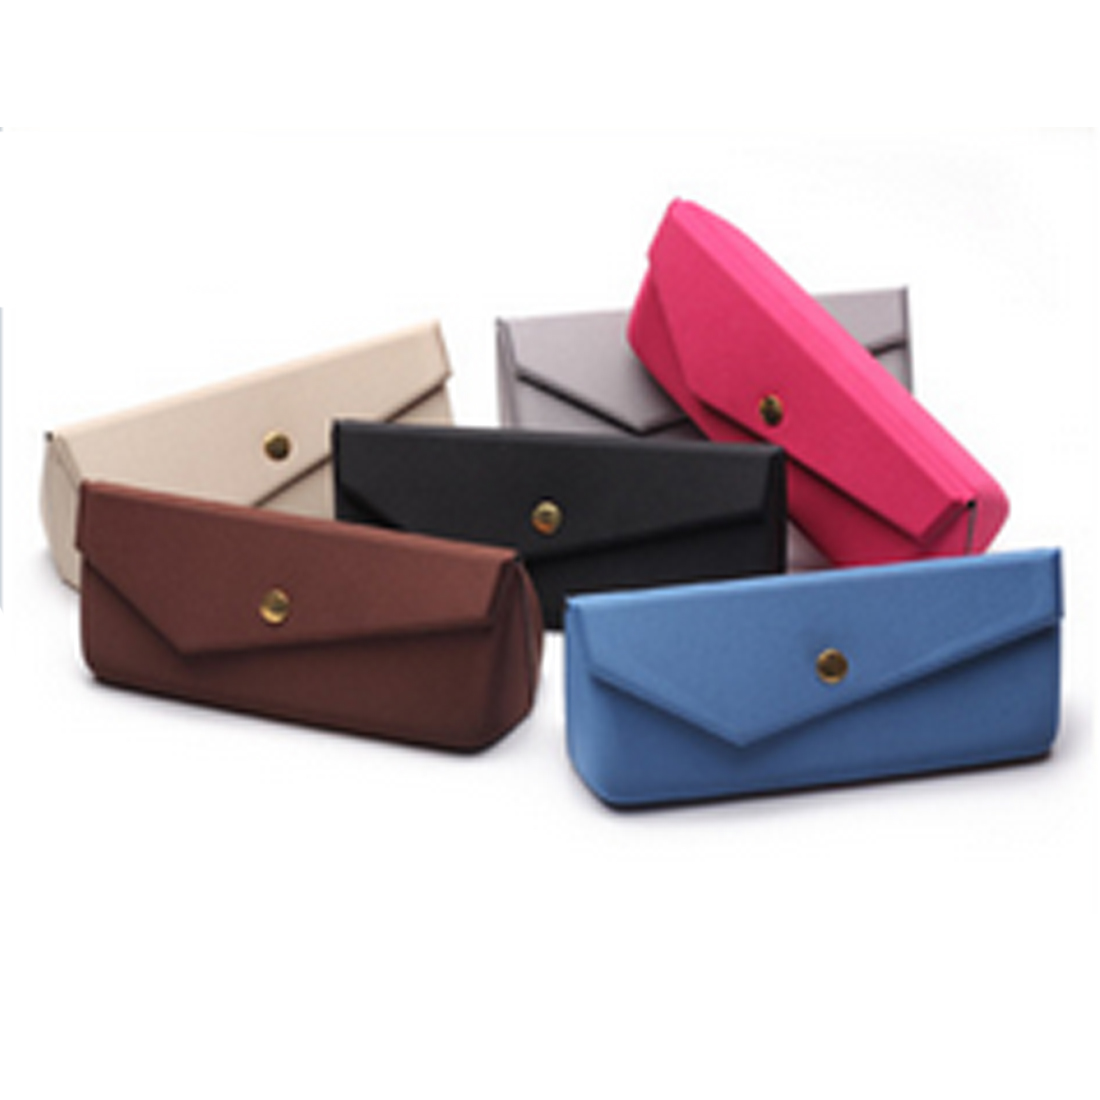 Apparel Accessories Steady 6 Colors Available Spectacle Cases 1 Pc Protable Light Triangular Fold Glasses Case Eyeglass Sunglasses Protector Hard Box Soft And Antislippery Eyewear Accessories